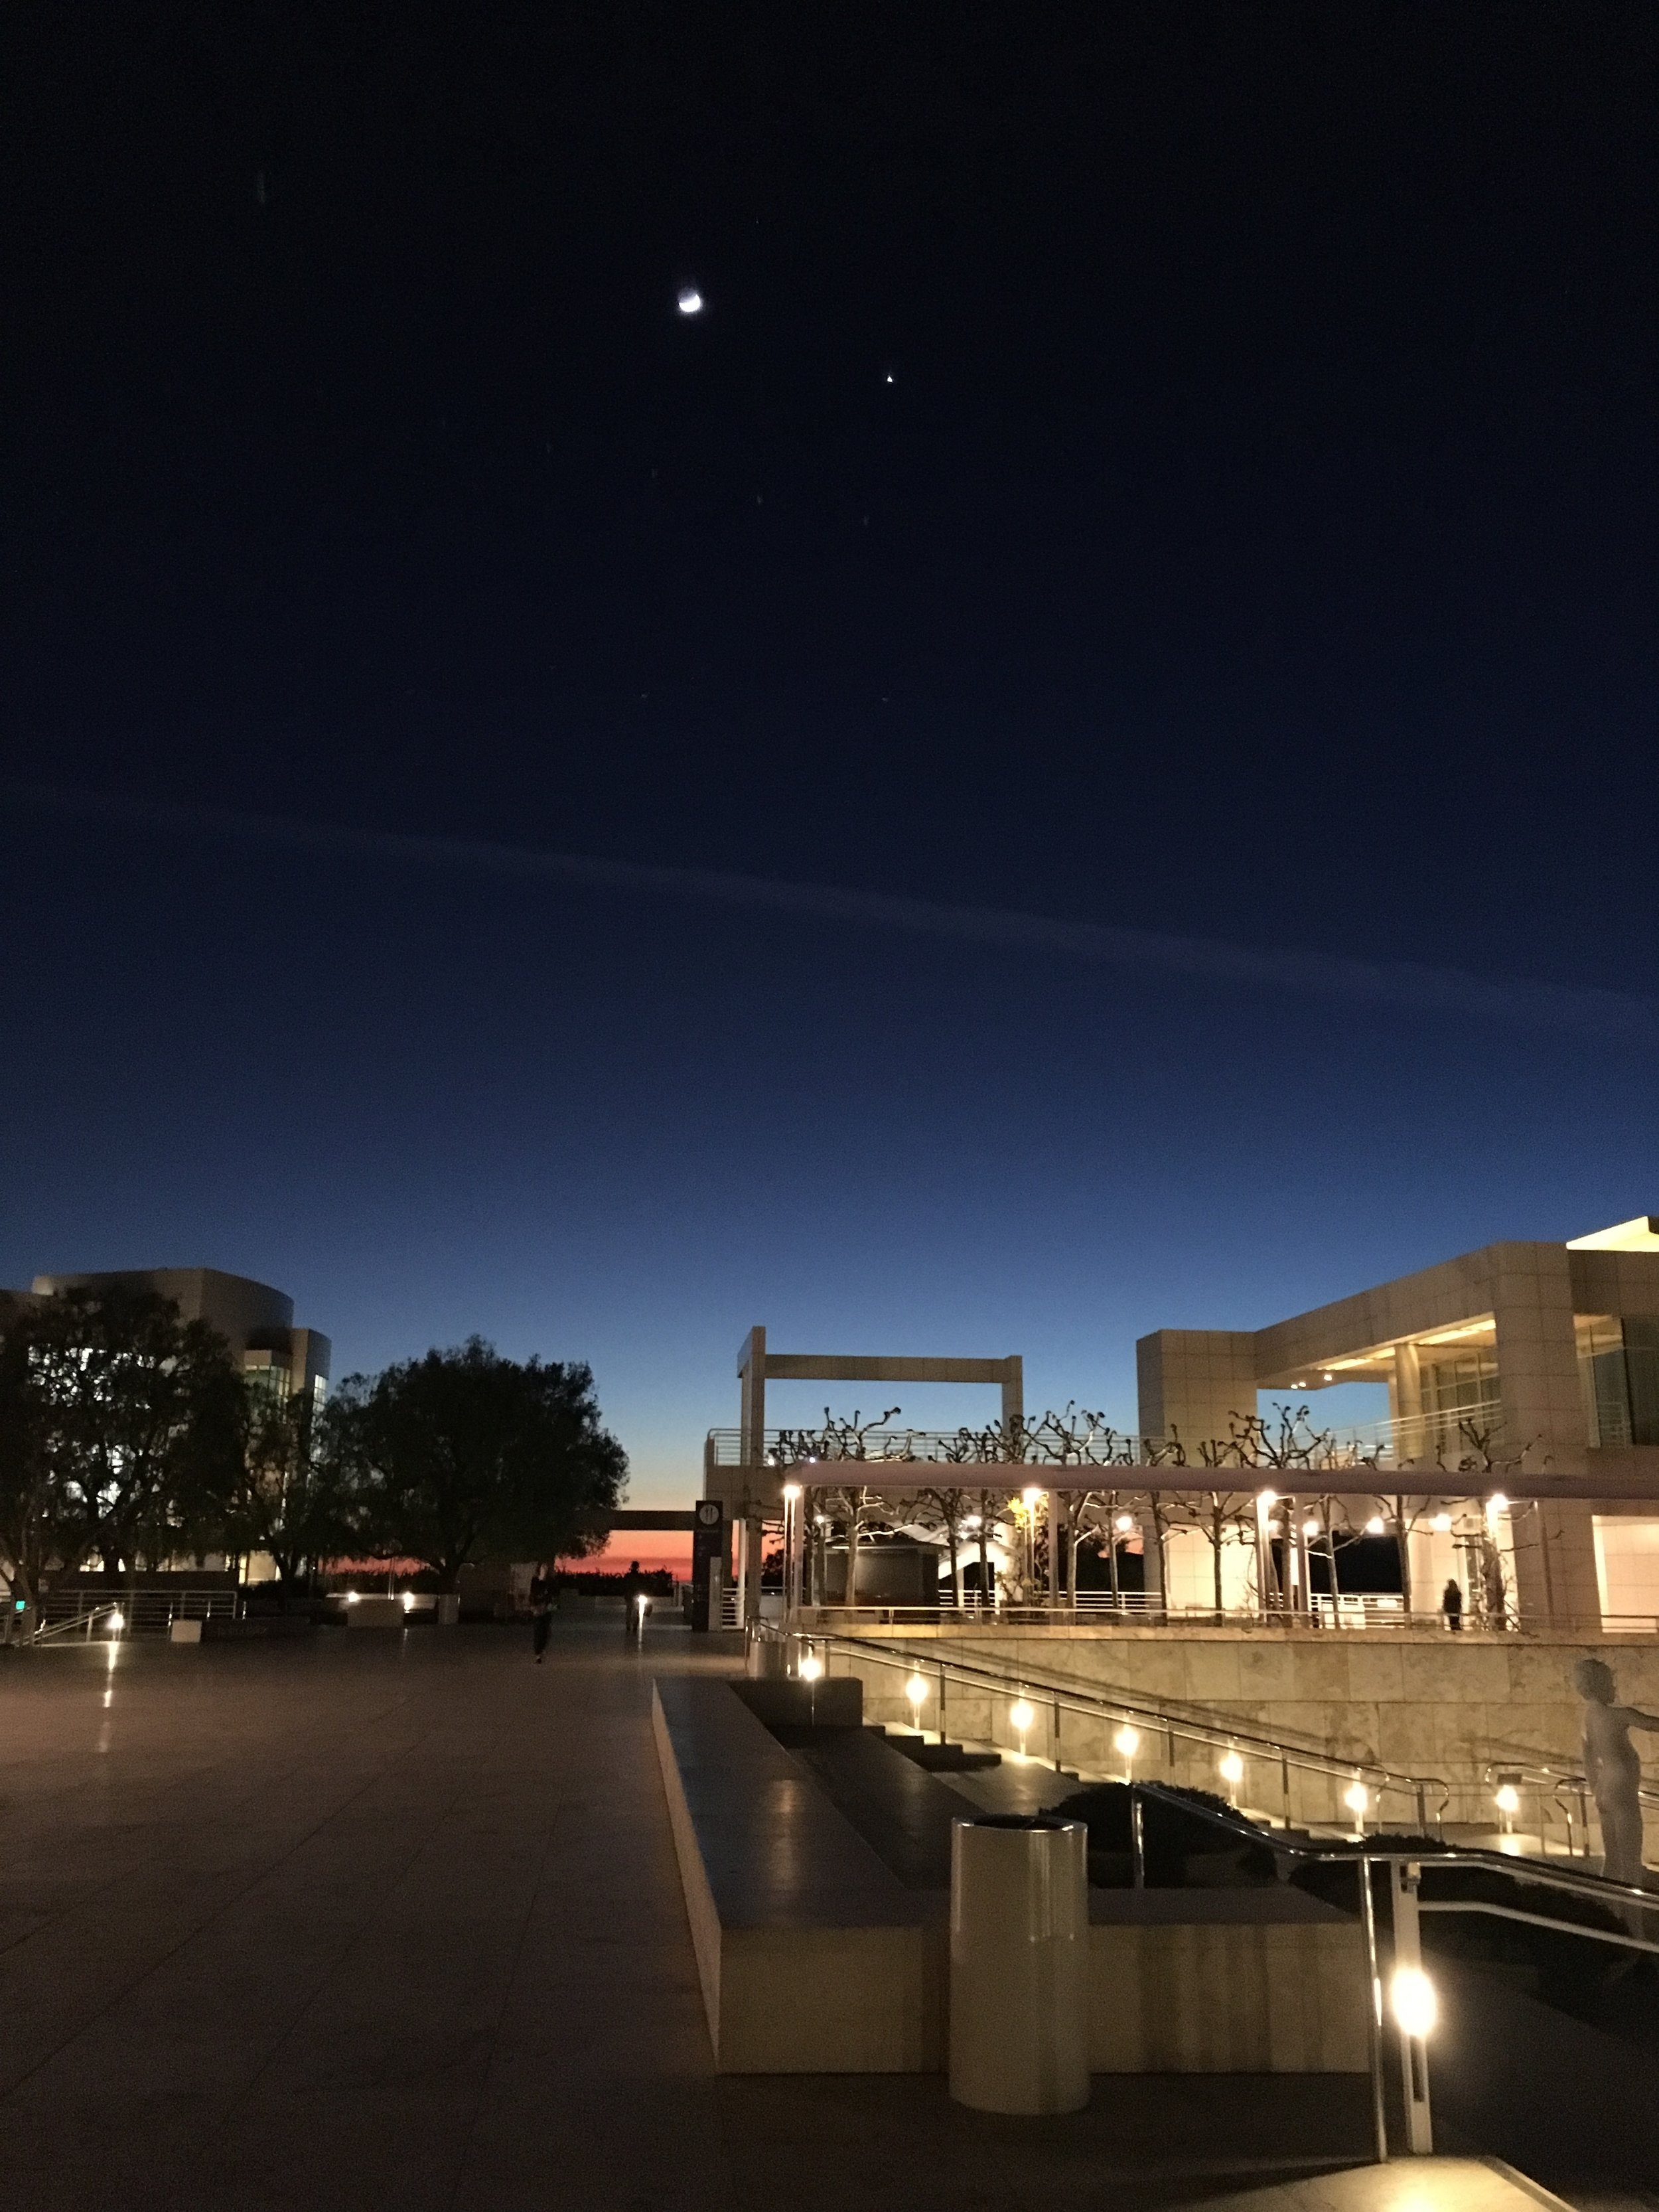 The Ada Louise Huxtable Papers are housed at the Getty Research Institute, part of the Getty Center complex in Los Angeles (Richard Meier & Partners, 1997). This was the scene one evening after a long day in the archives: the sun, the moon, Venus, and, if you look very closely, Orion.  Photo: Christine Cipriani